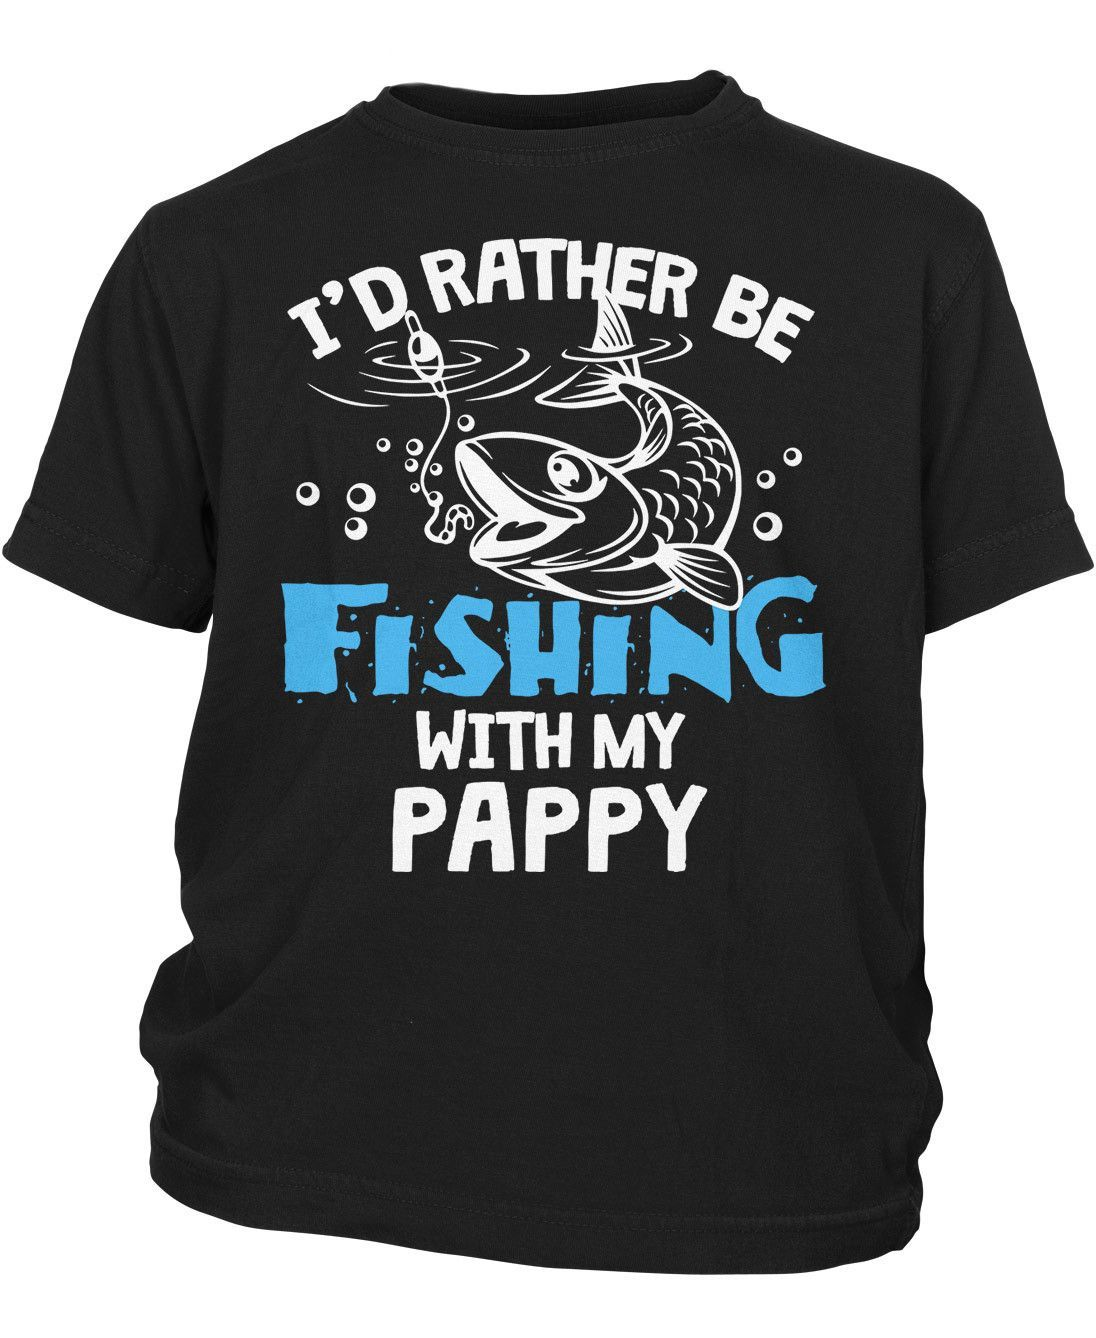 I'd rather be fishing with Pappy - Children's T-Shirt